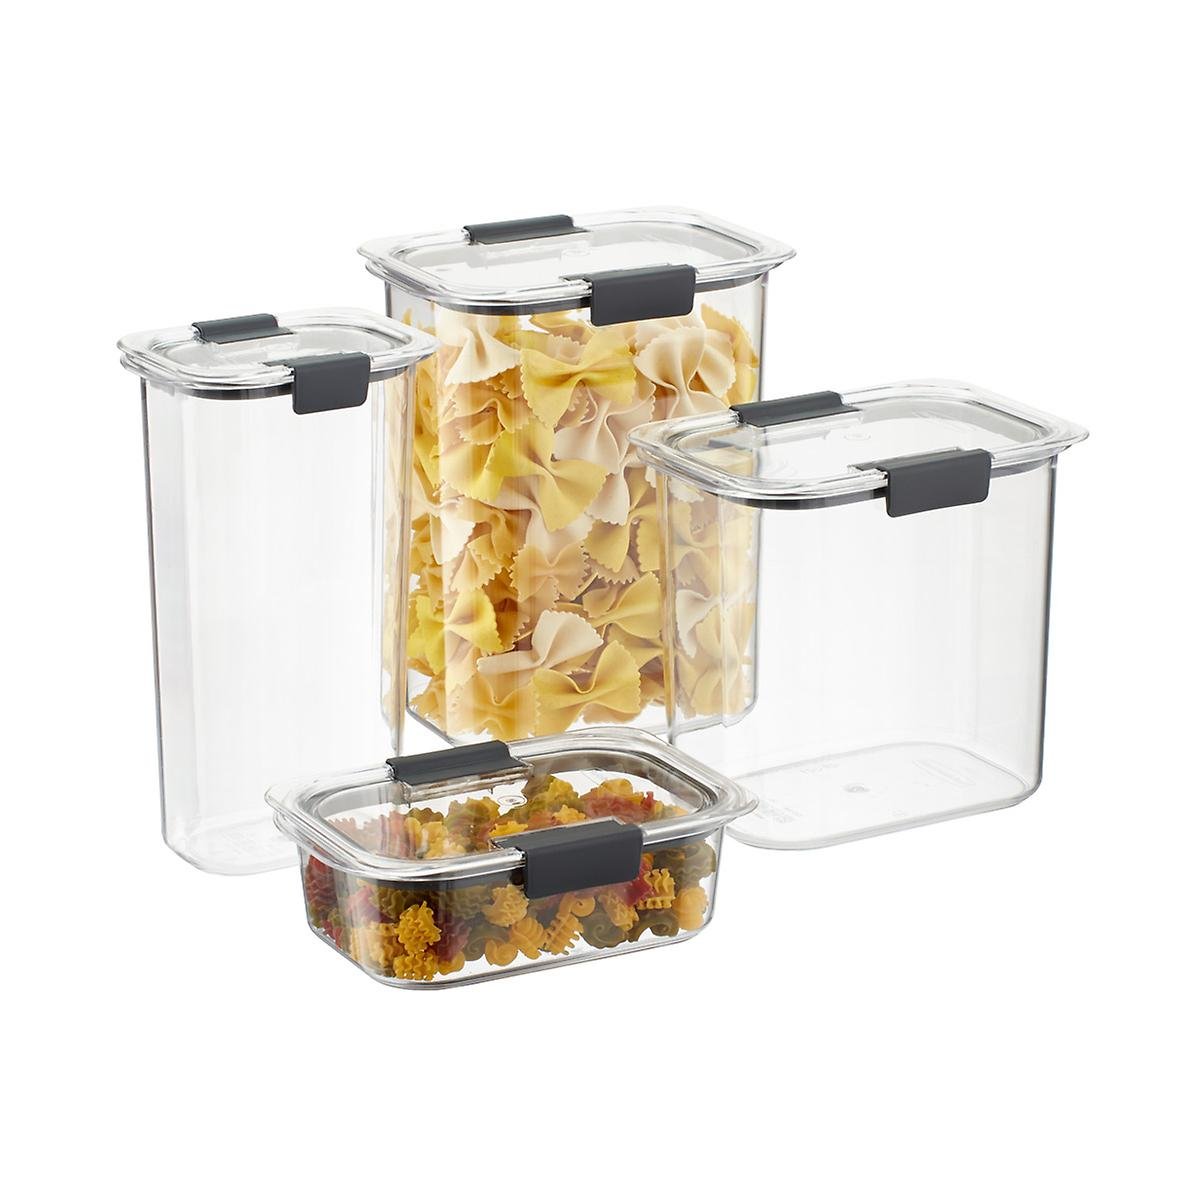 Rubbermaid Brilliance Pantry Set of 8